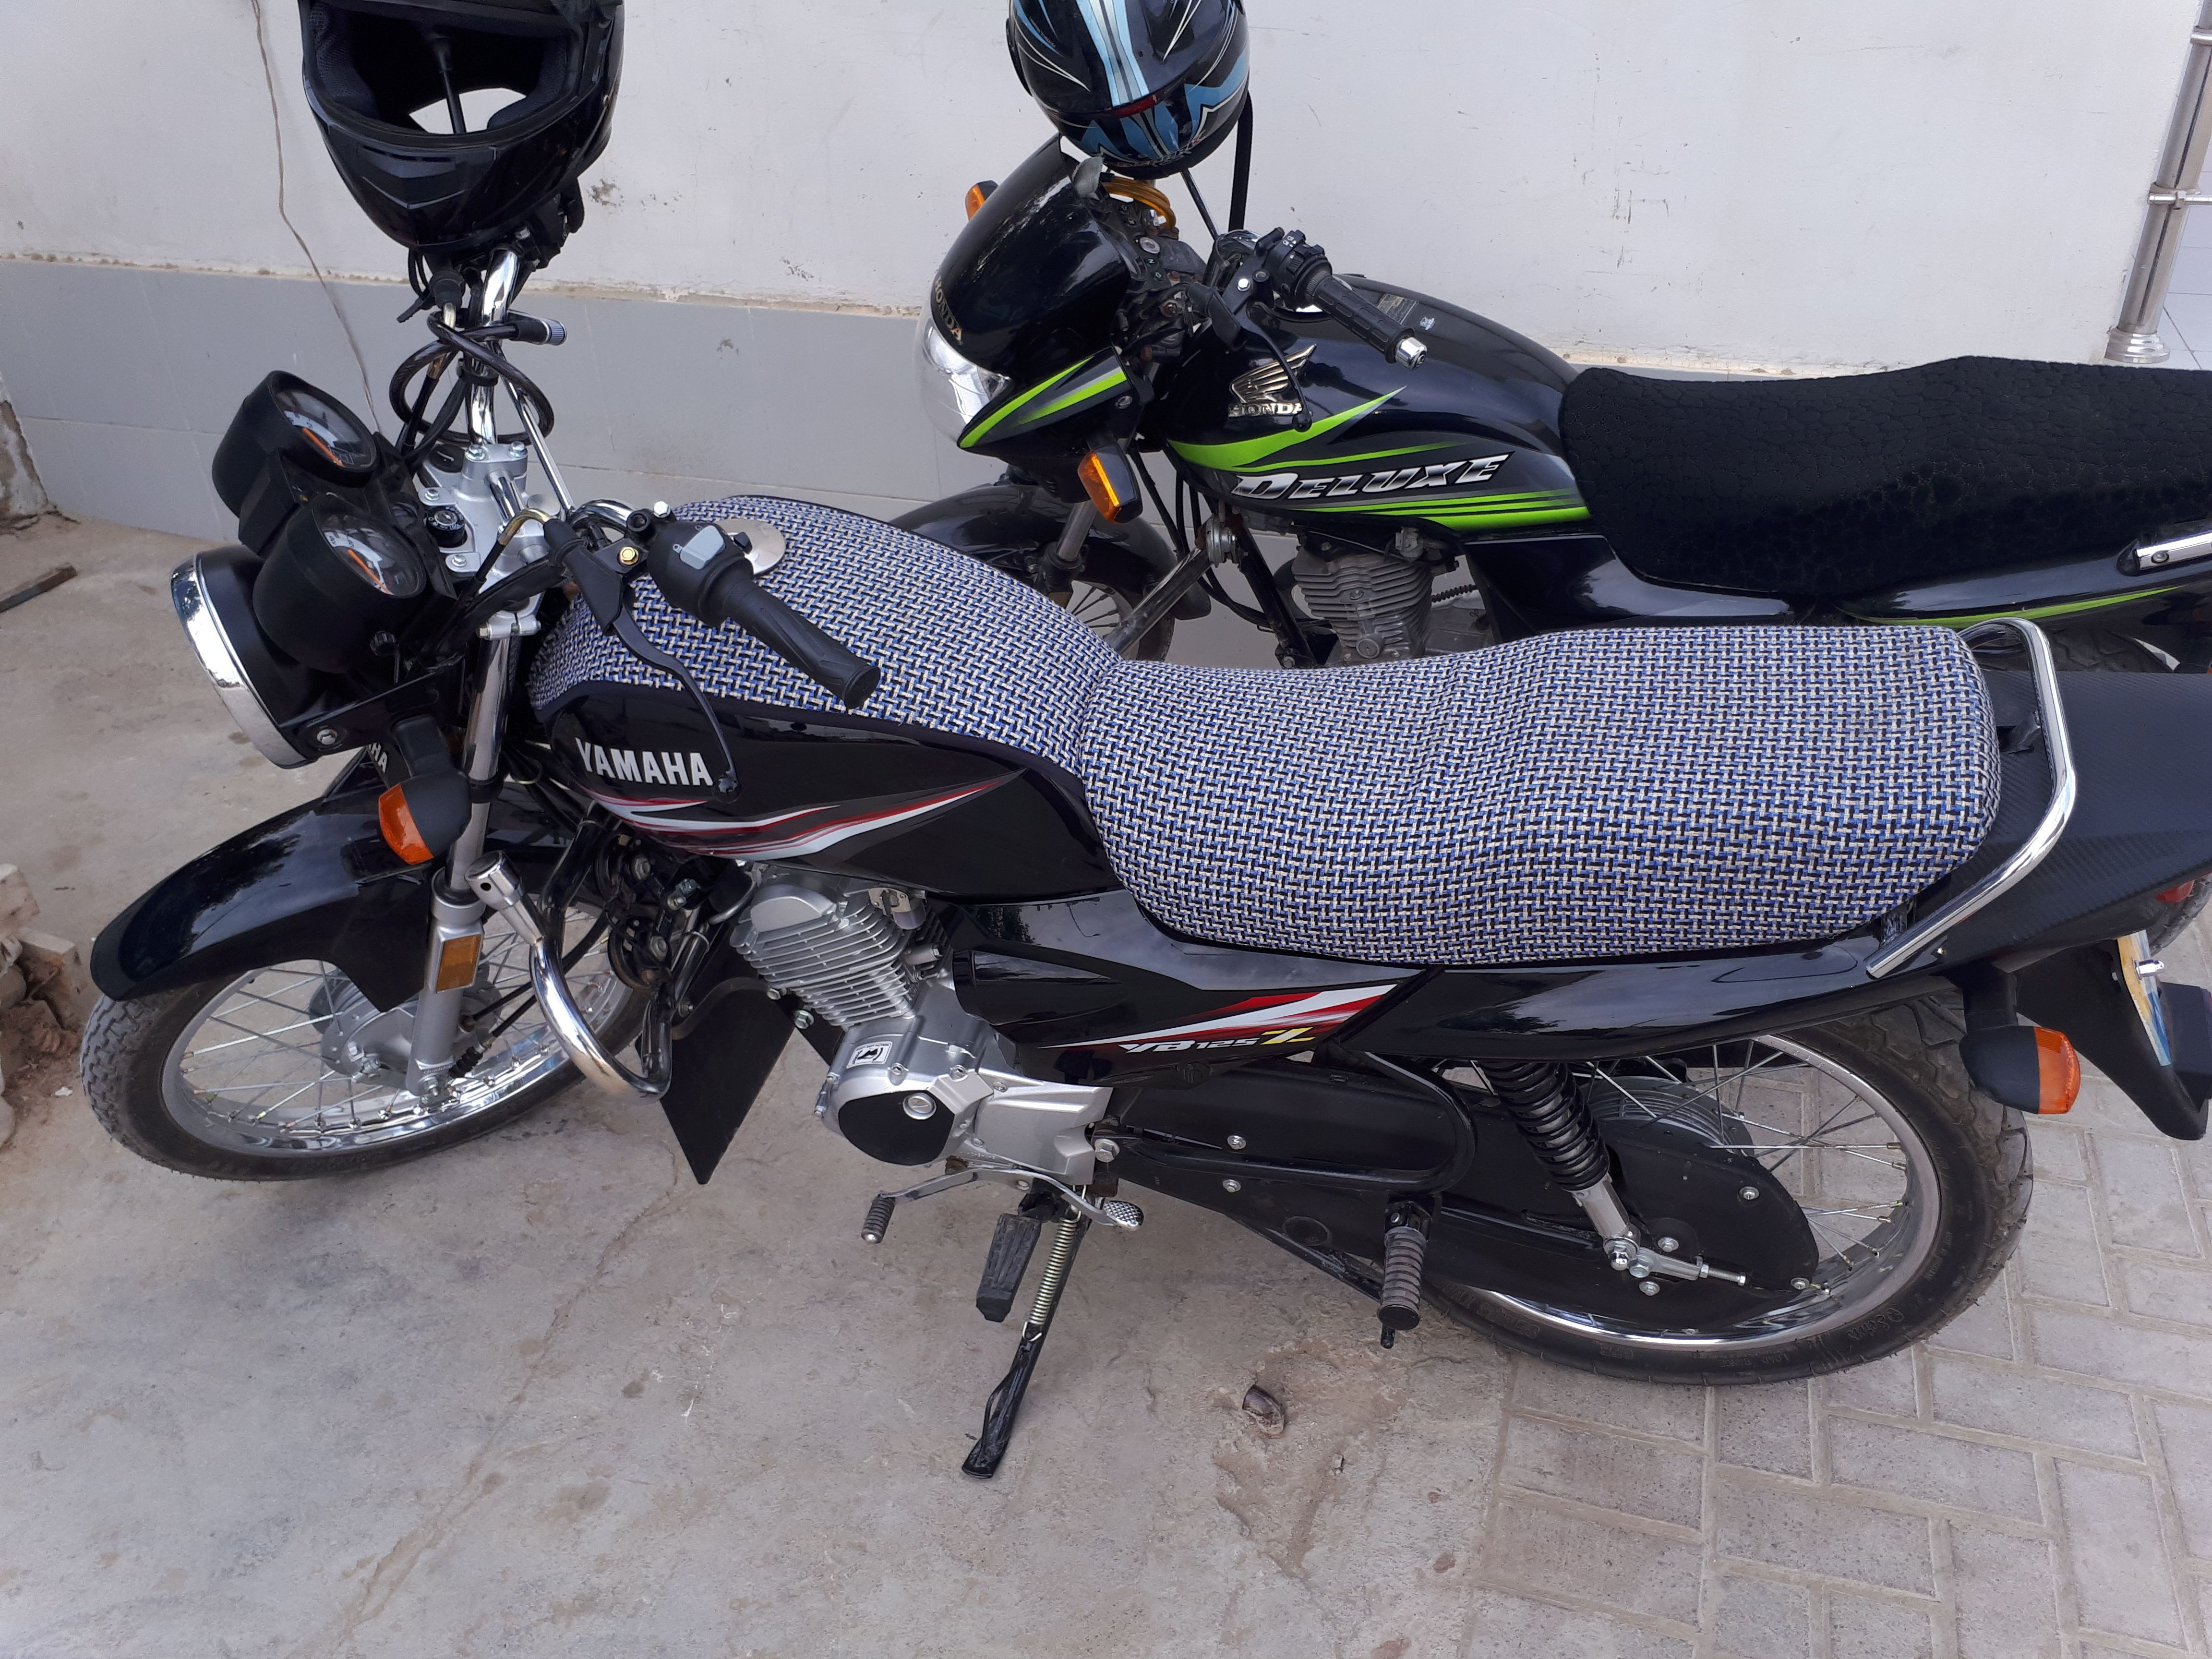 Top Yamaha 125z Review In 2020 Yamaha Car Lover Fuel Economy